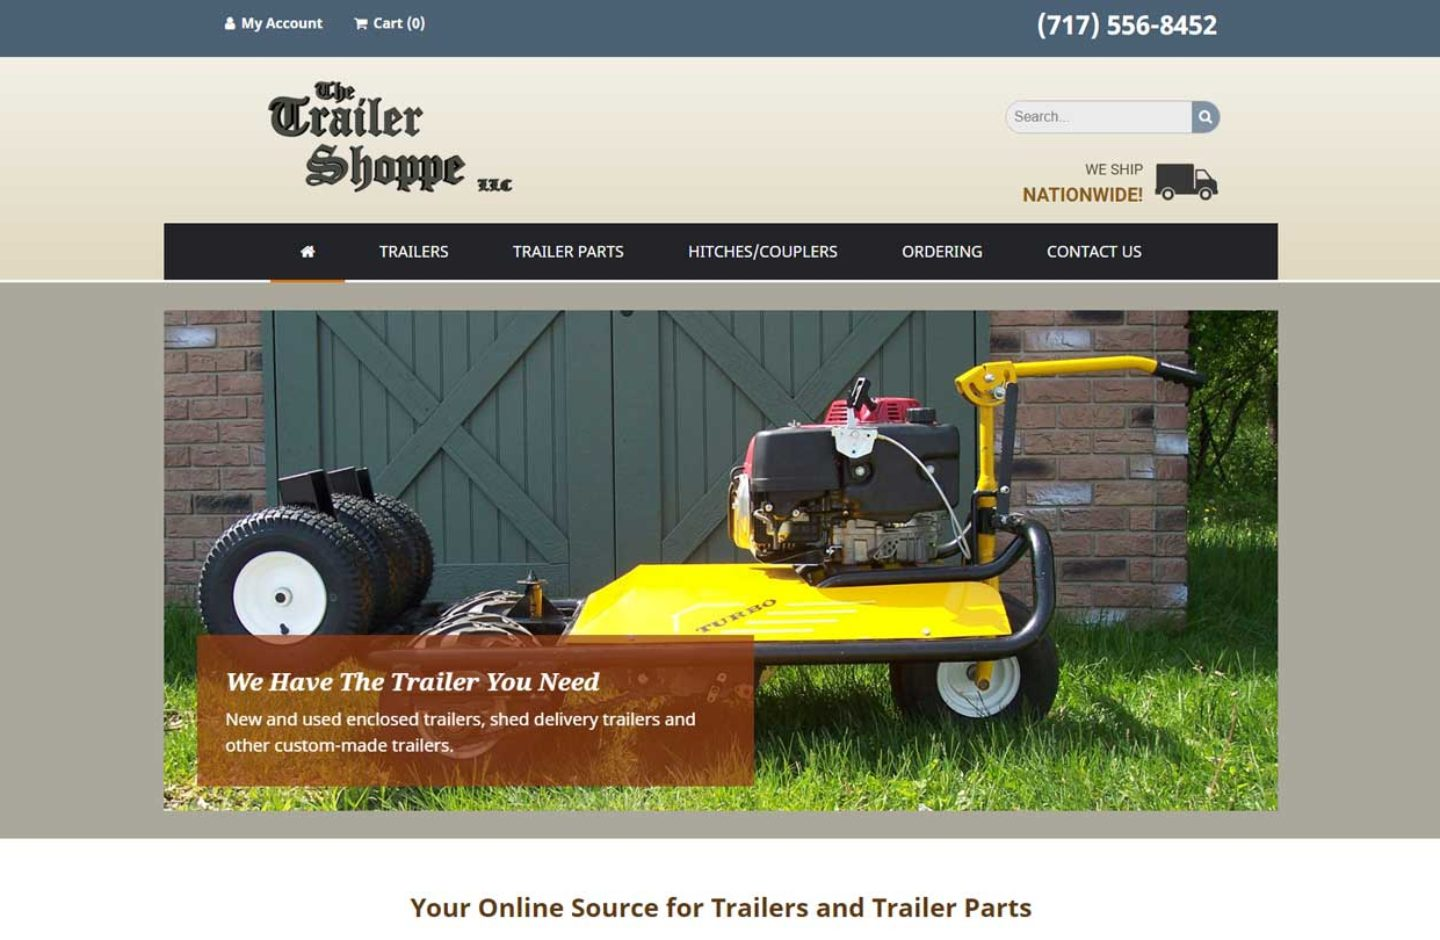 The Trailer Shoppe